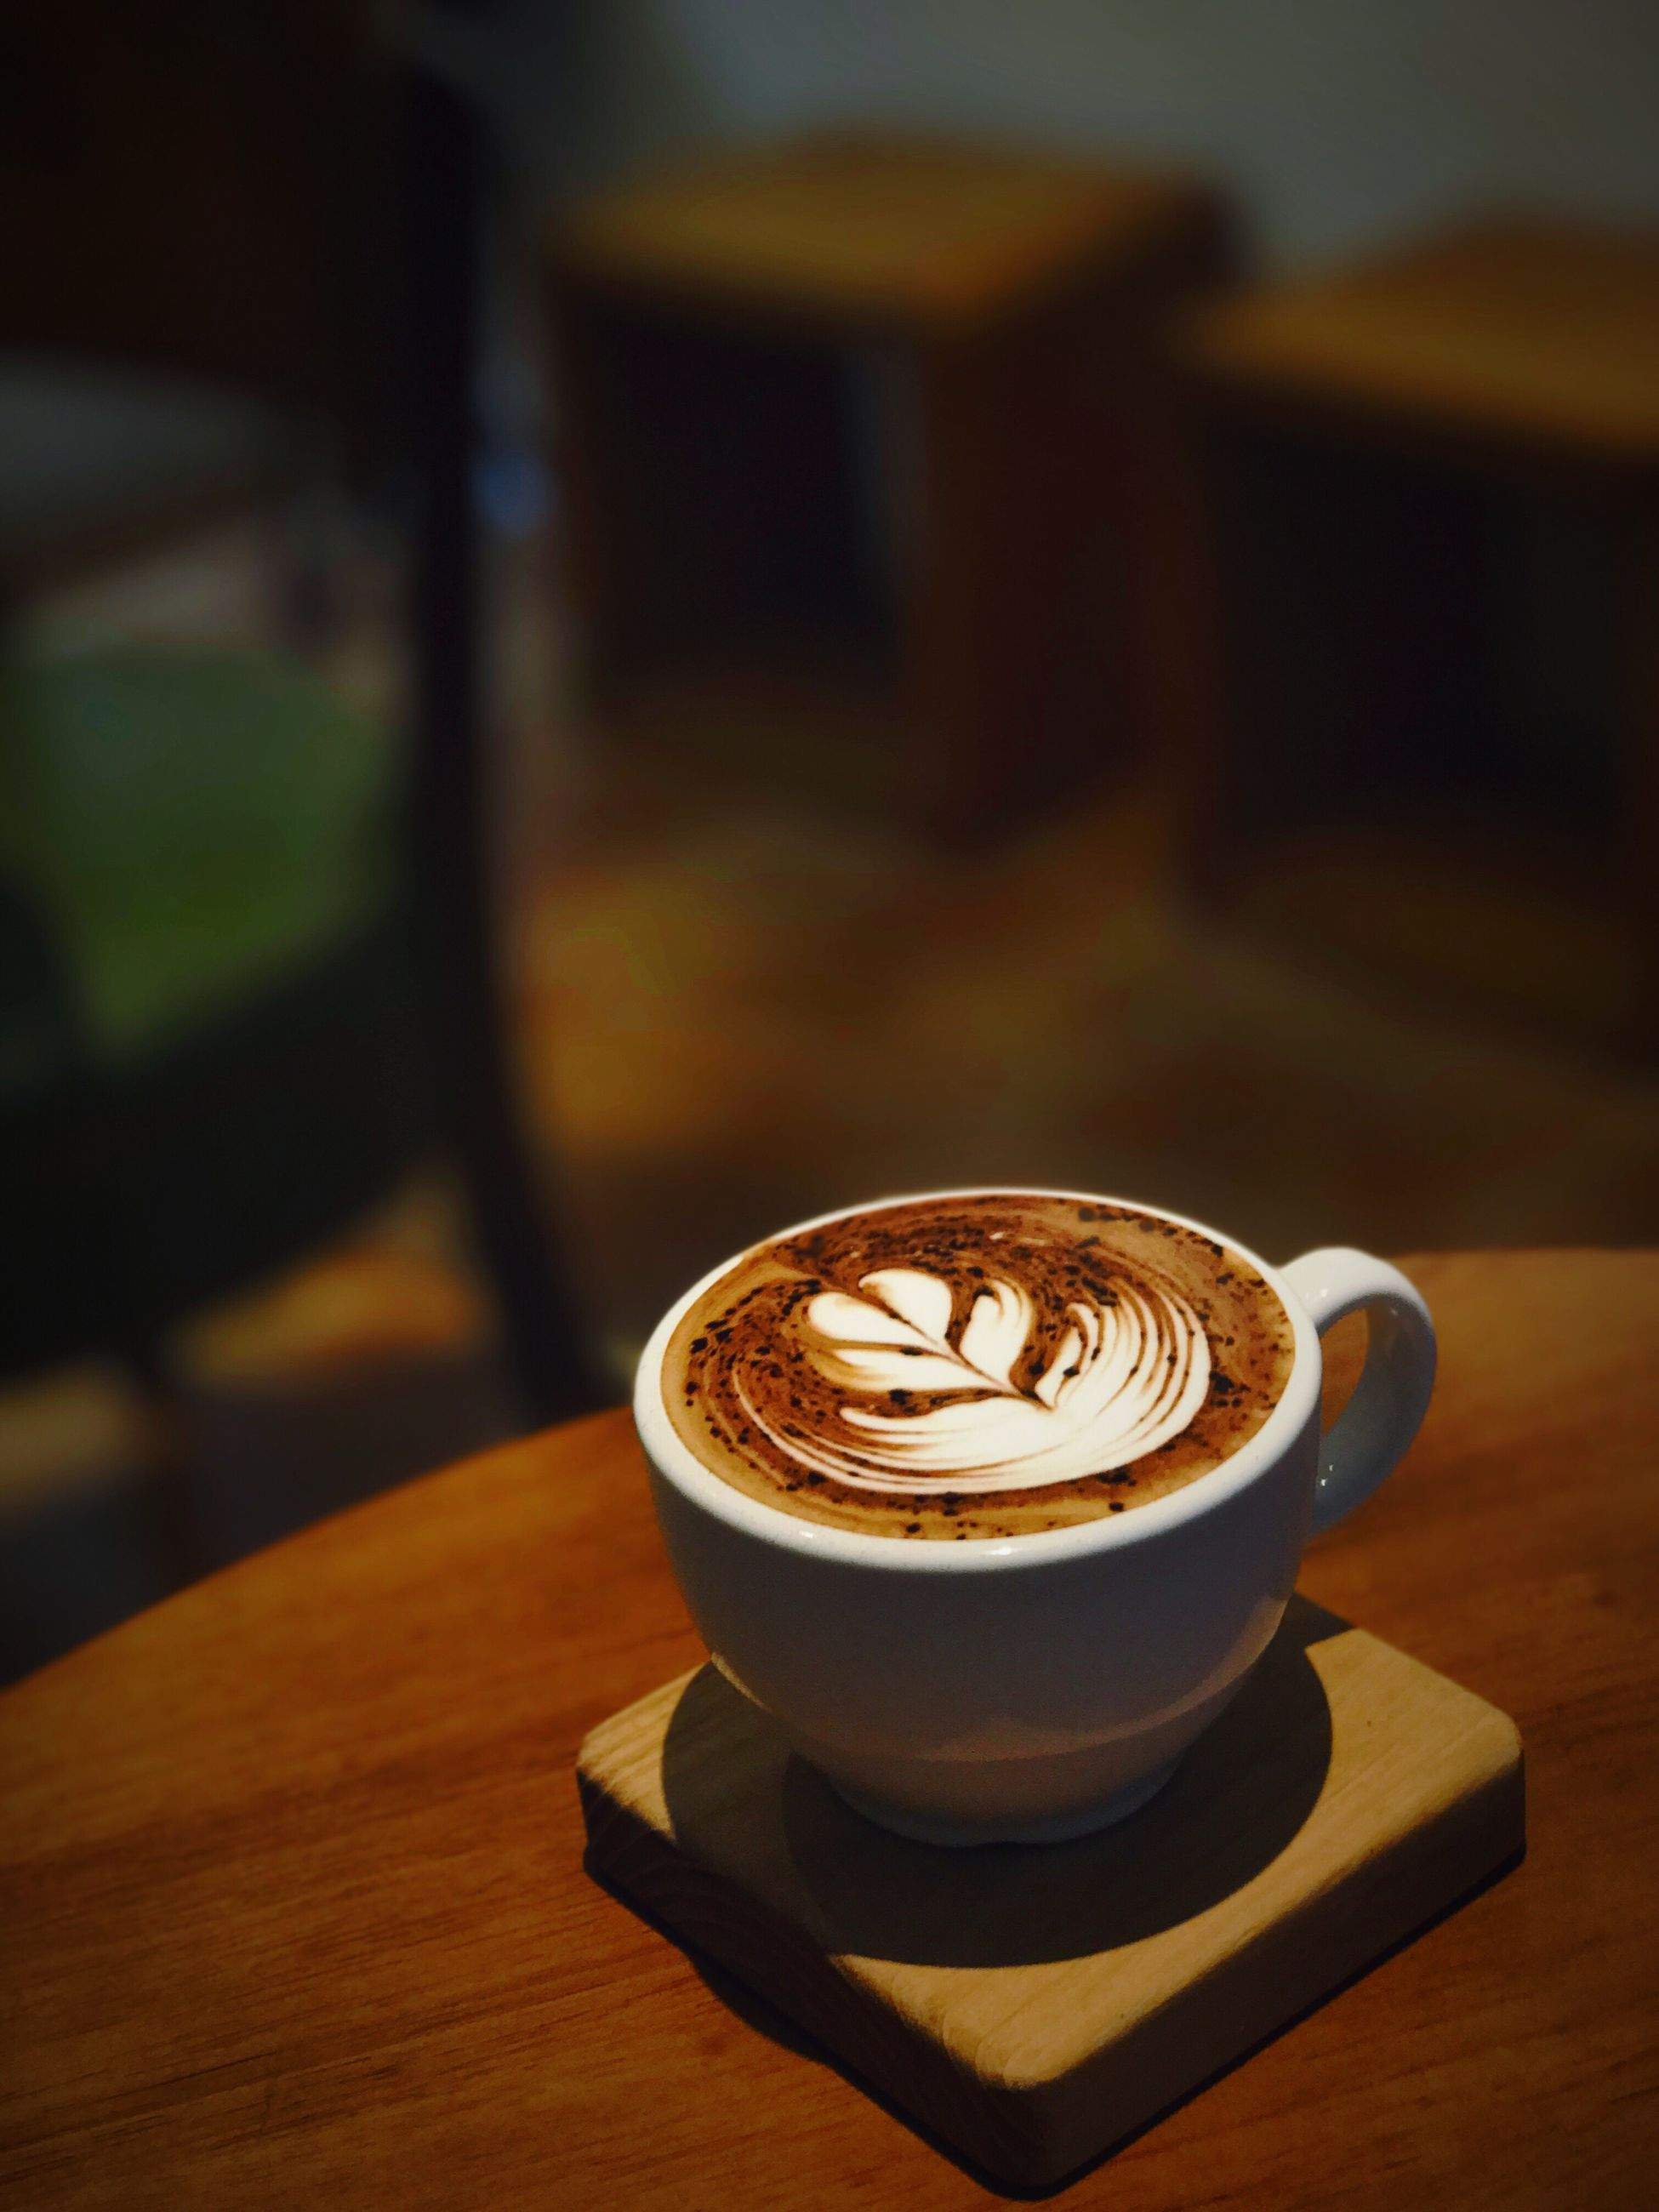 coffee - drink, coffee cup, cappuccino, drink, focus on foreground, table, cup, froth art, close-up, frothy drink, espresso, latte, mocha, indoors, no people, day